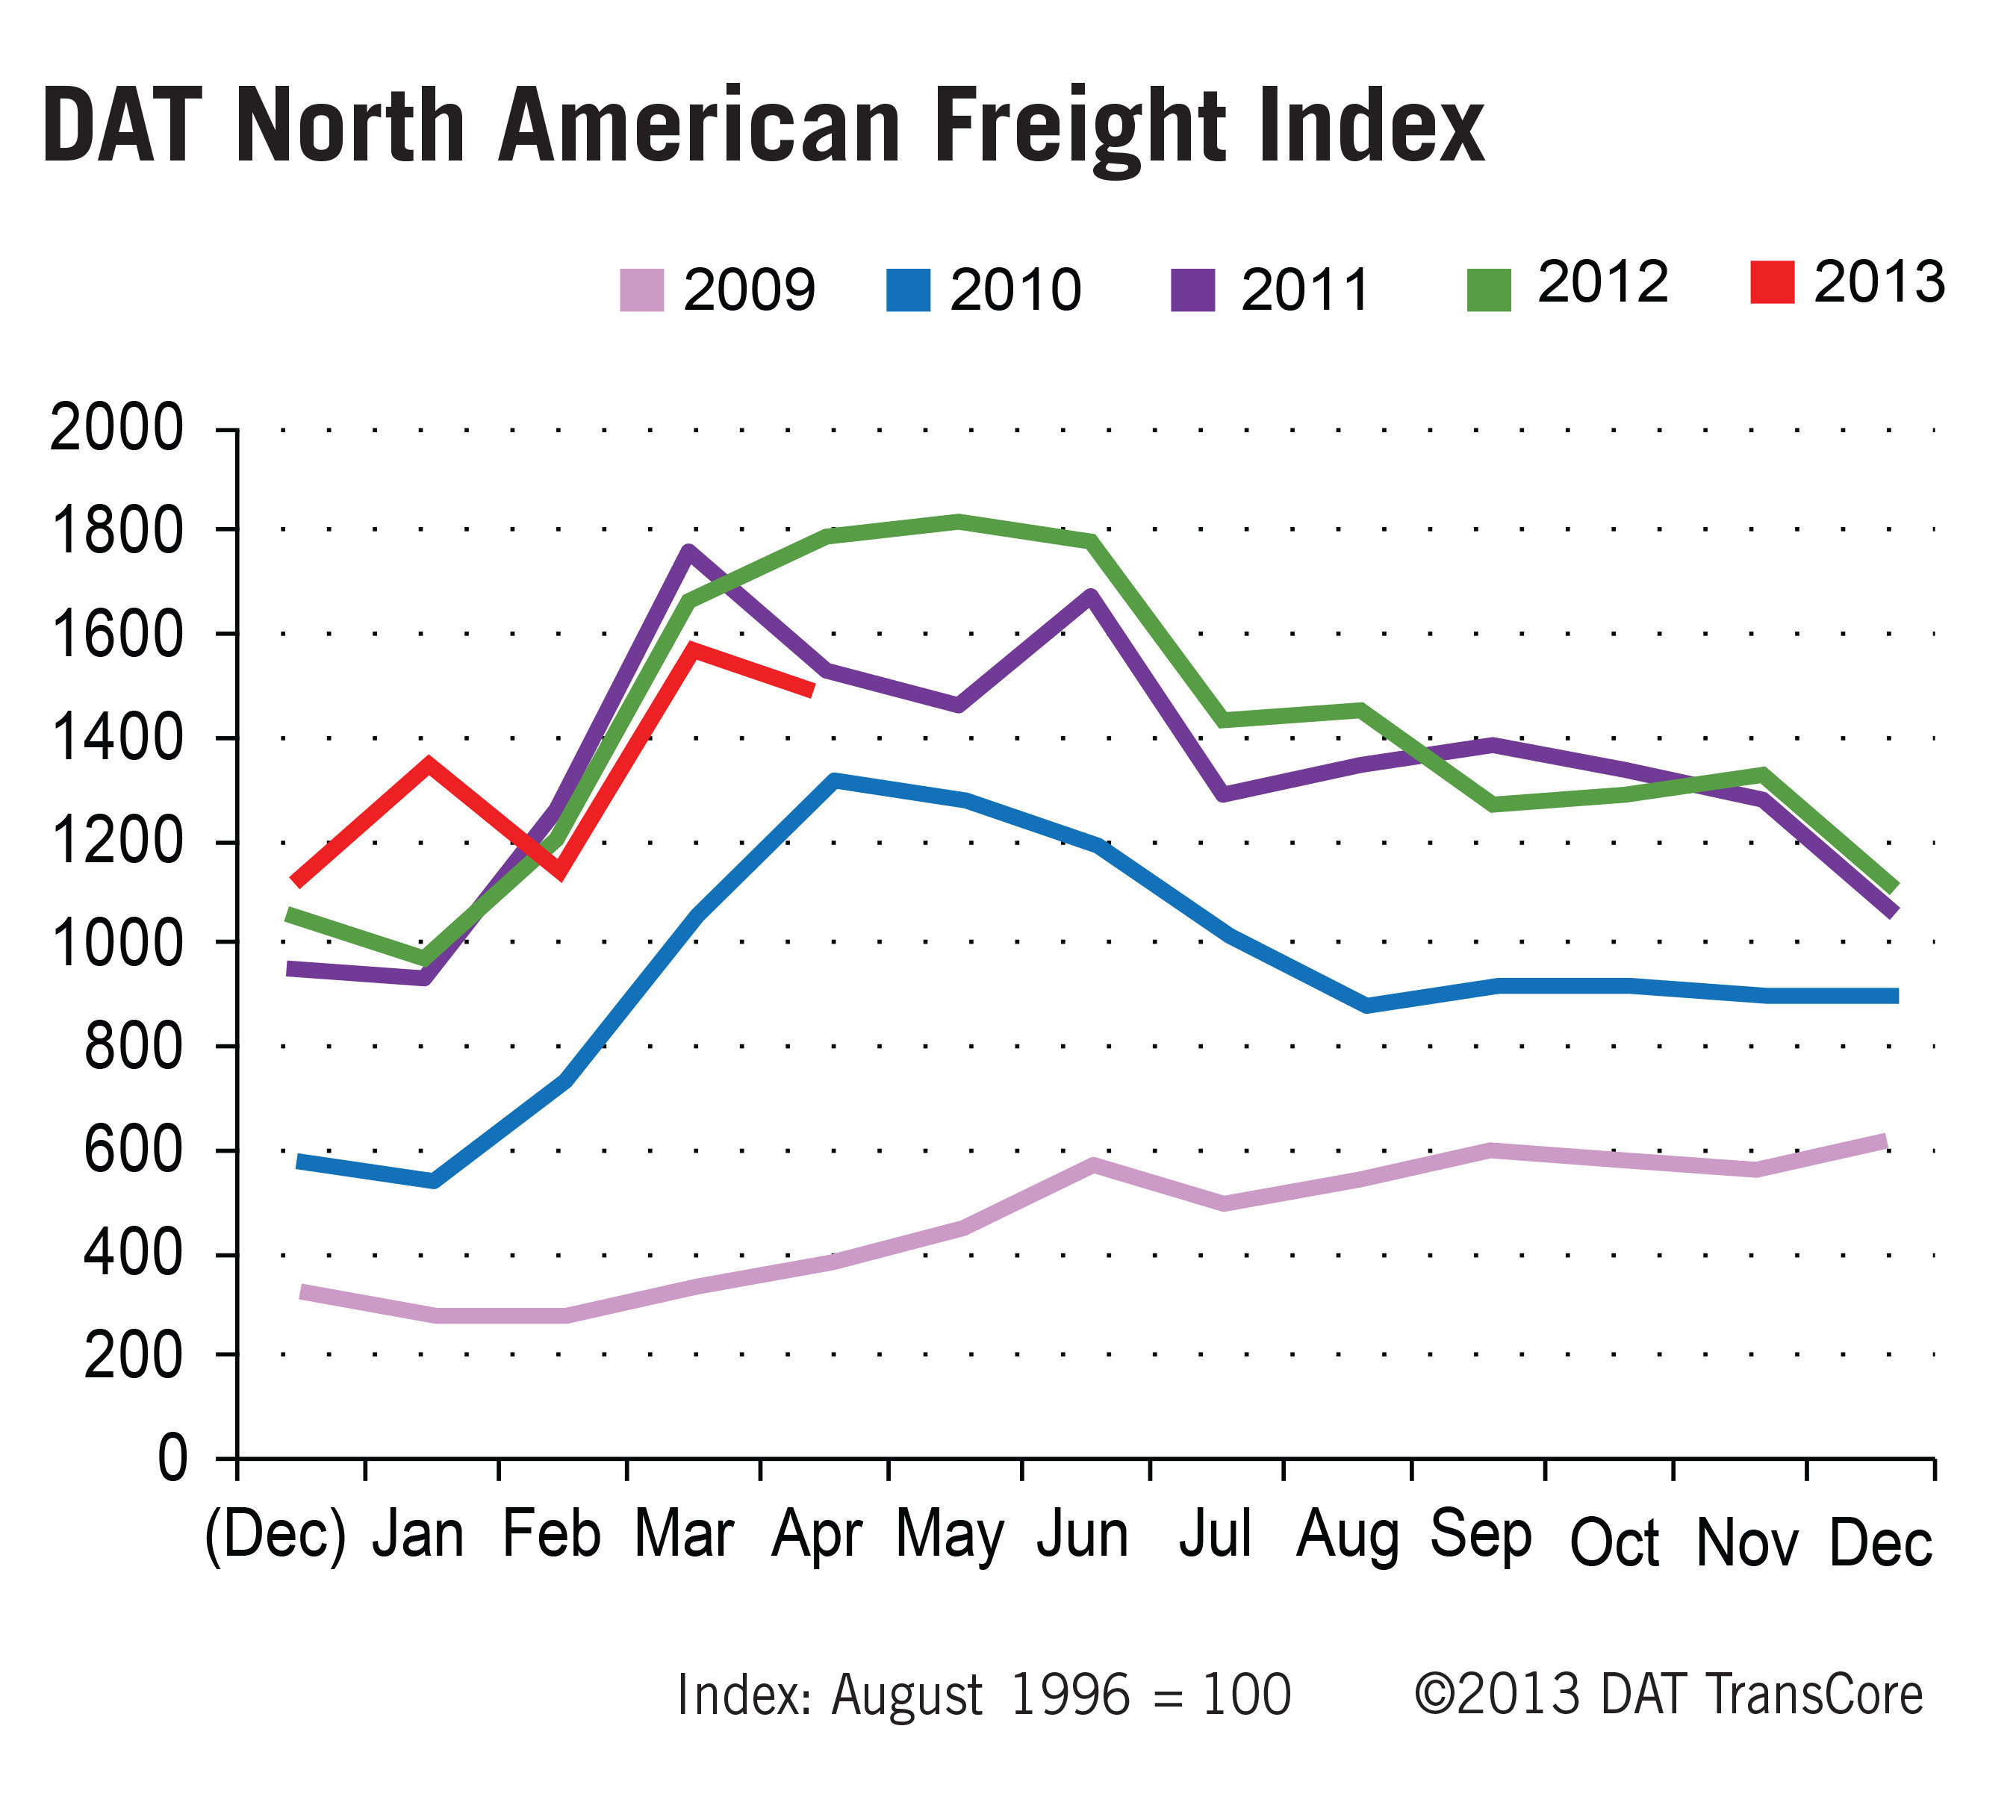 DAT North American Freight Index Reports Spot Market Decline - Weather a Factor